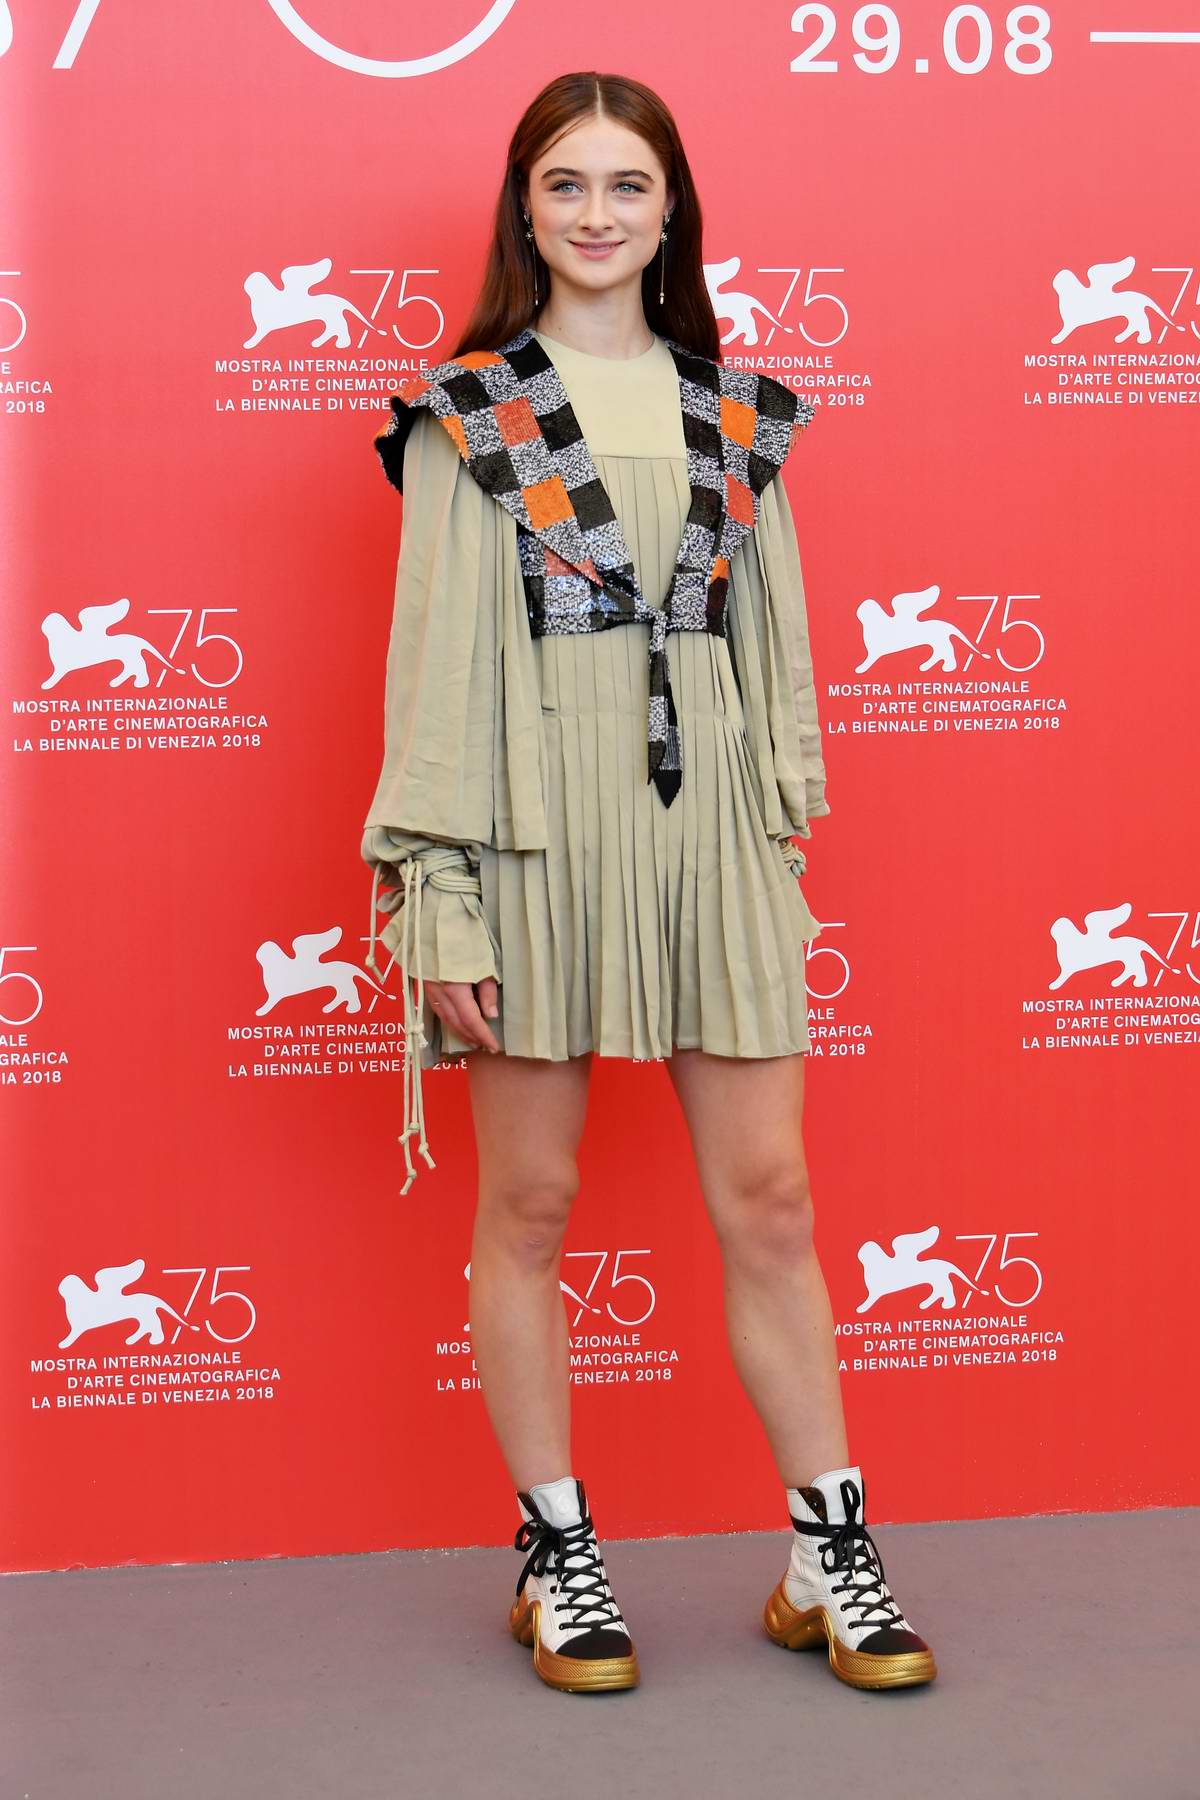 Raffey Cassidy attends 'Vox Lux' photocall during 75th Venice Film Festival in Venice, Italy